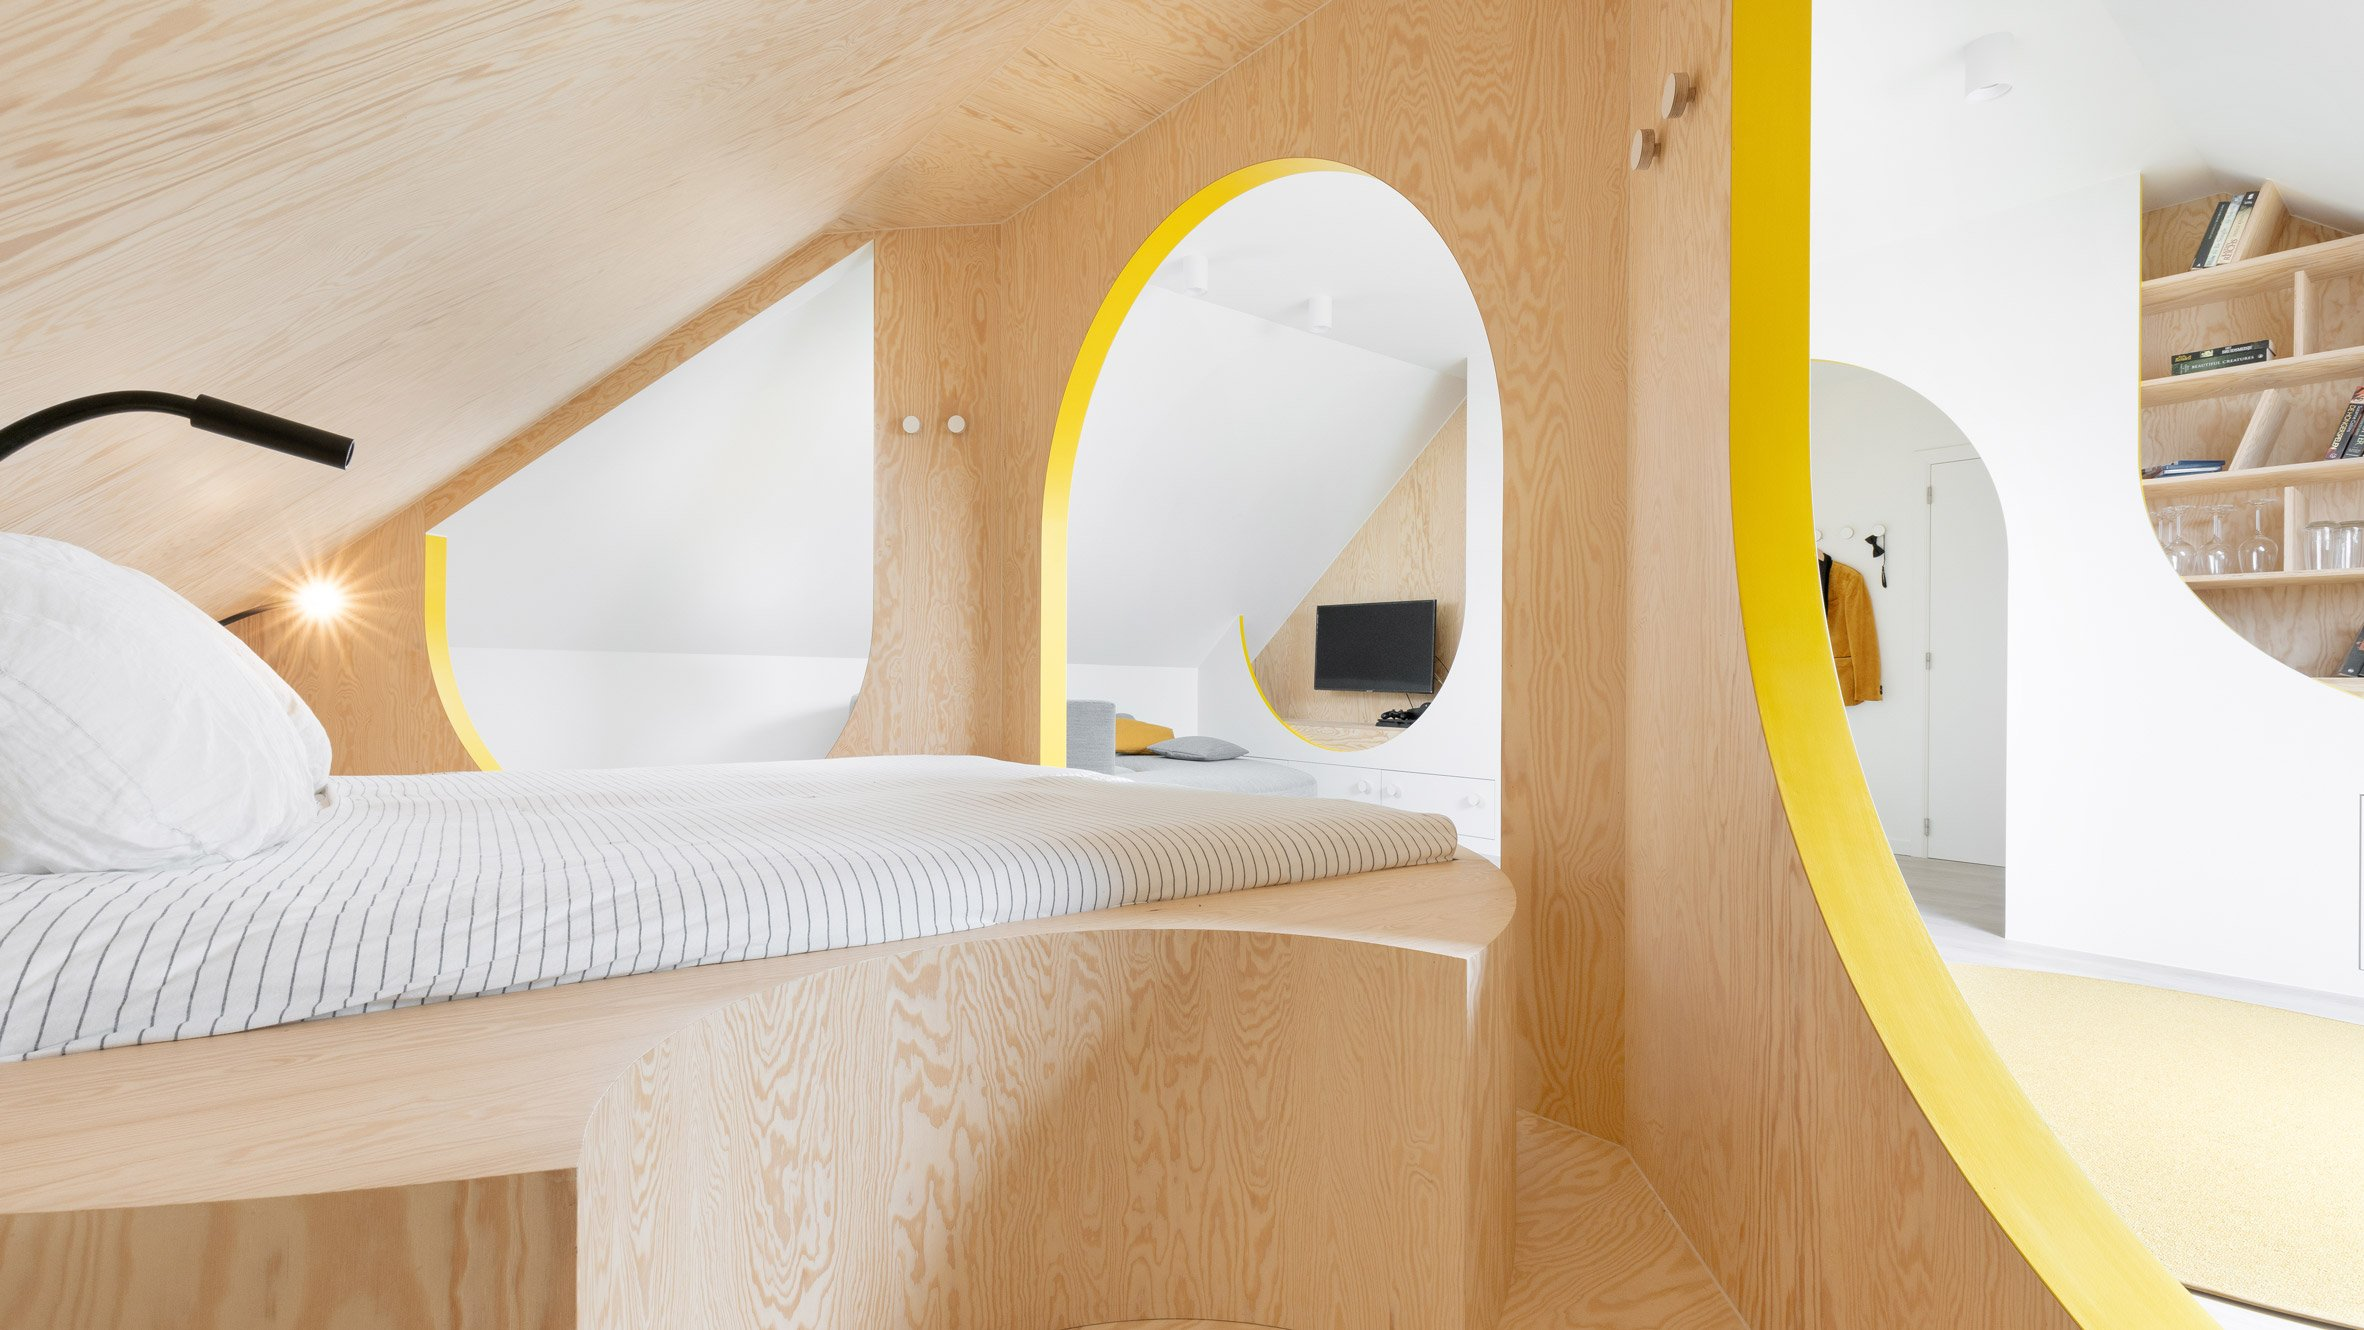 A bed in a converted attic in Belgium